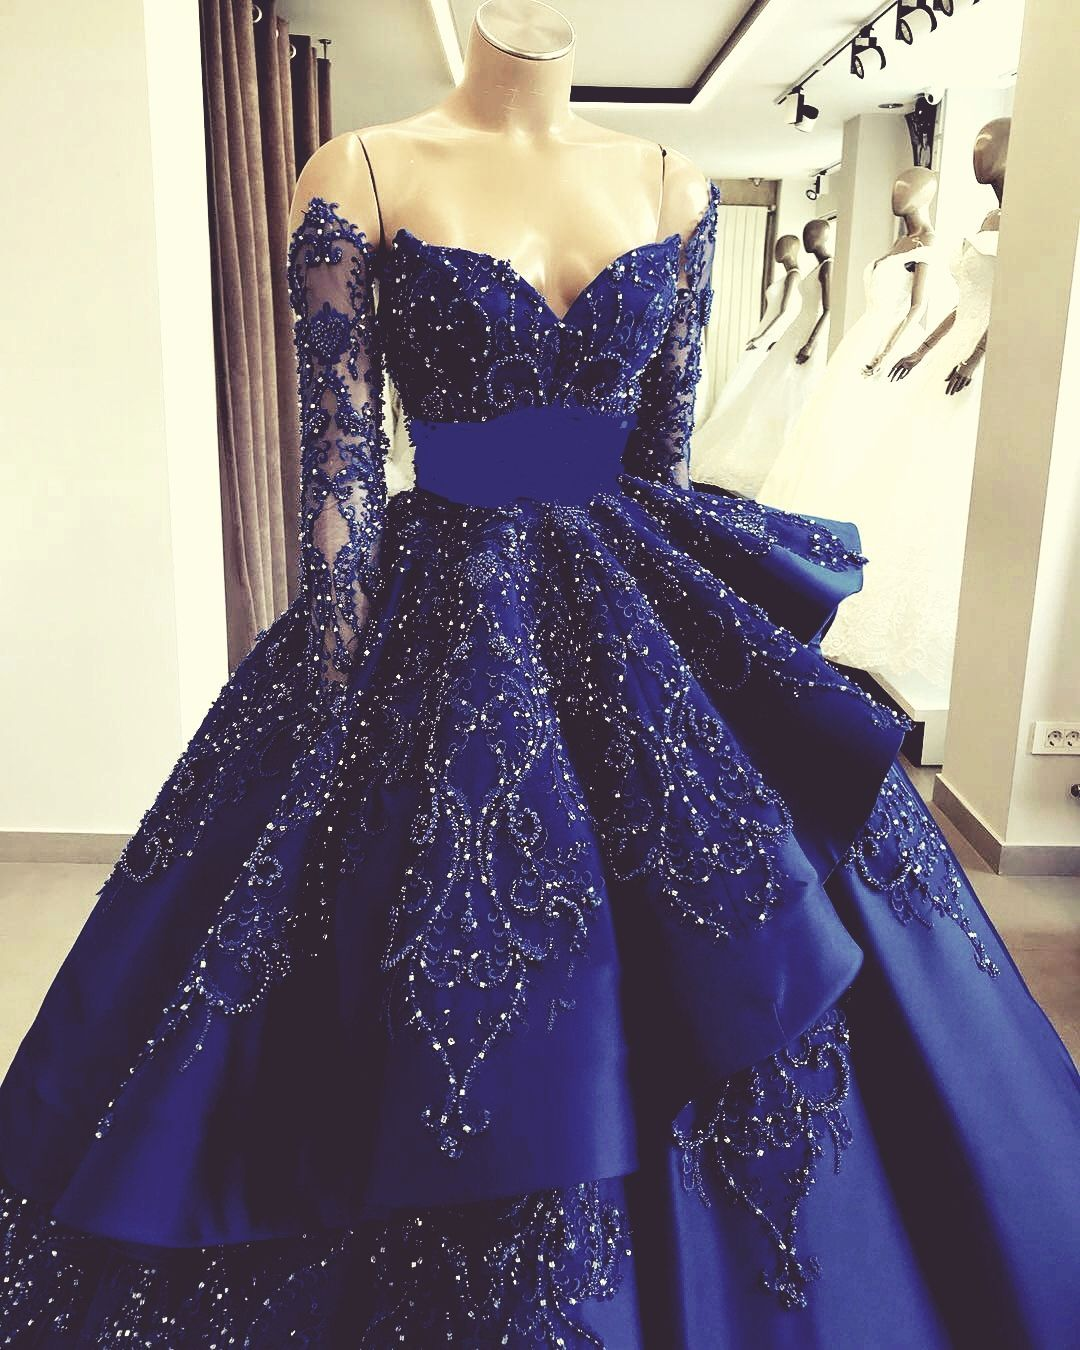 Mistress S Good Boy Bwwm In 2020 Prom Dresses Long With Sleeves Ruffle Prom Dress Prom Dresses Ball Gown [ 1350 x 1080 Pixel ]